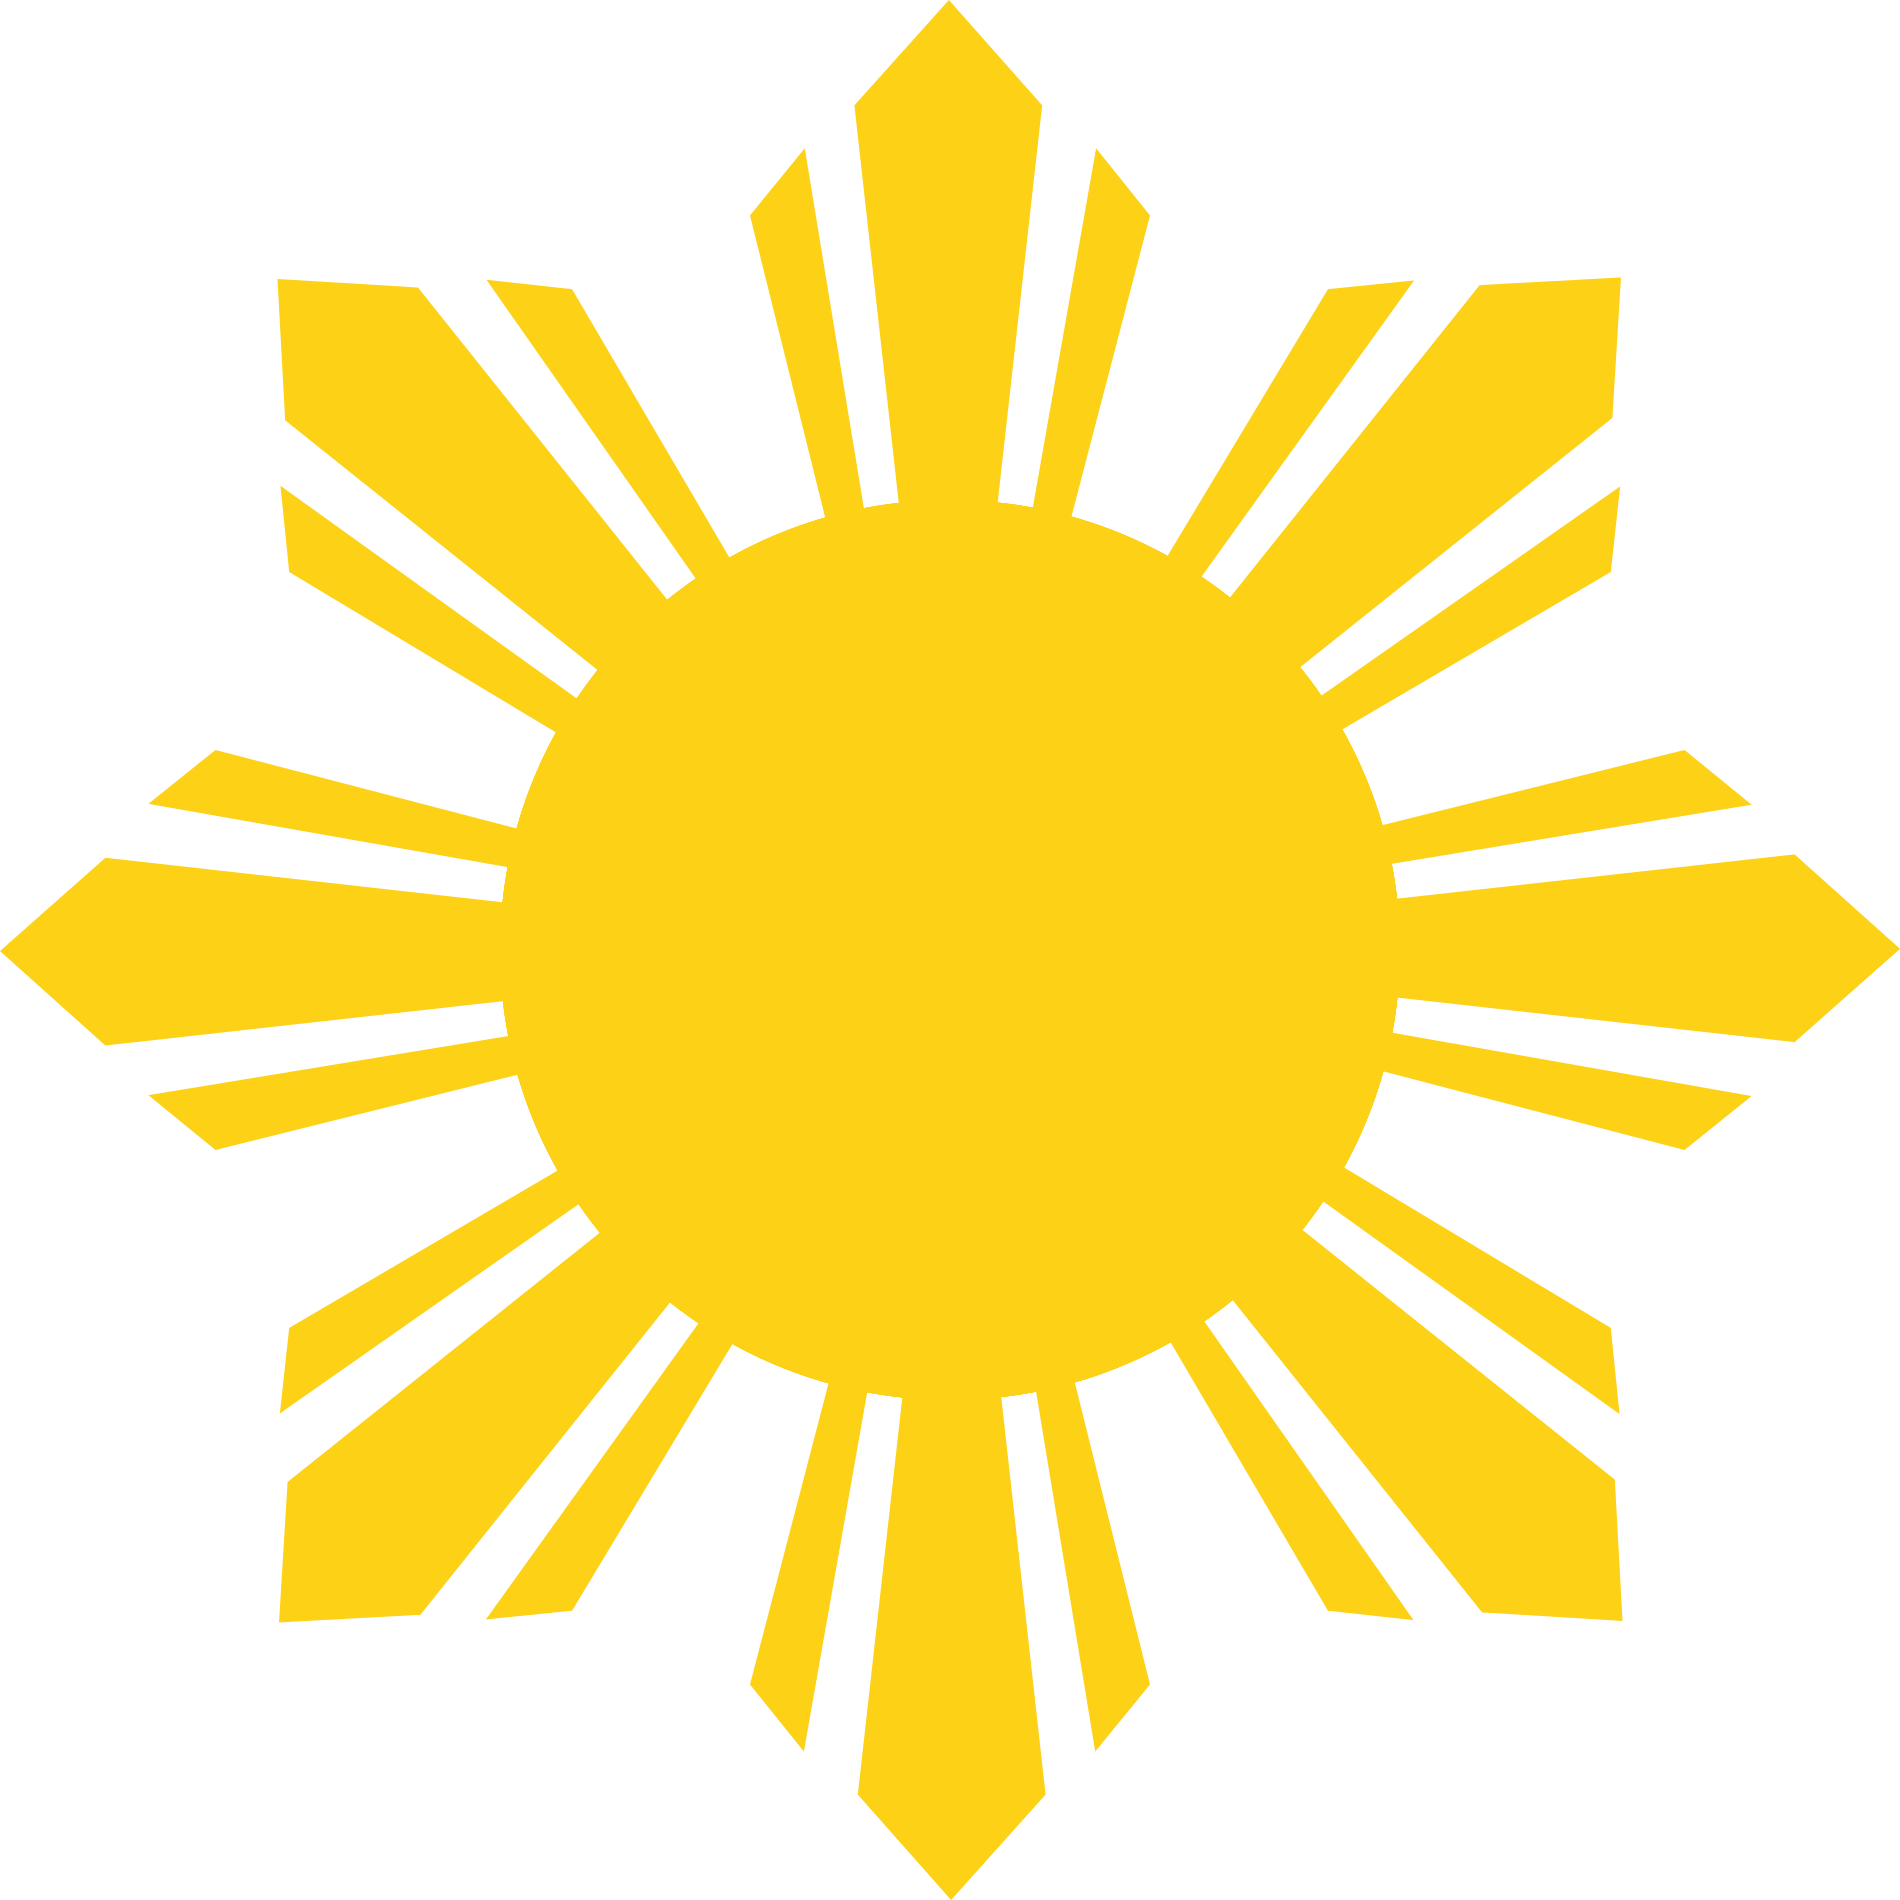 file flag the philippines cropped sun svg wikimedia #9626